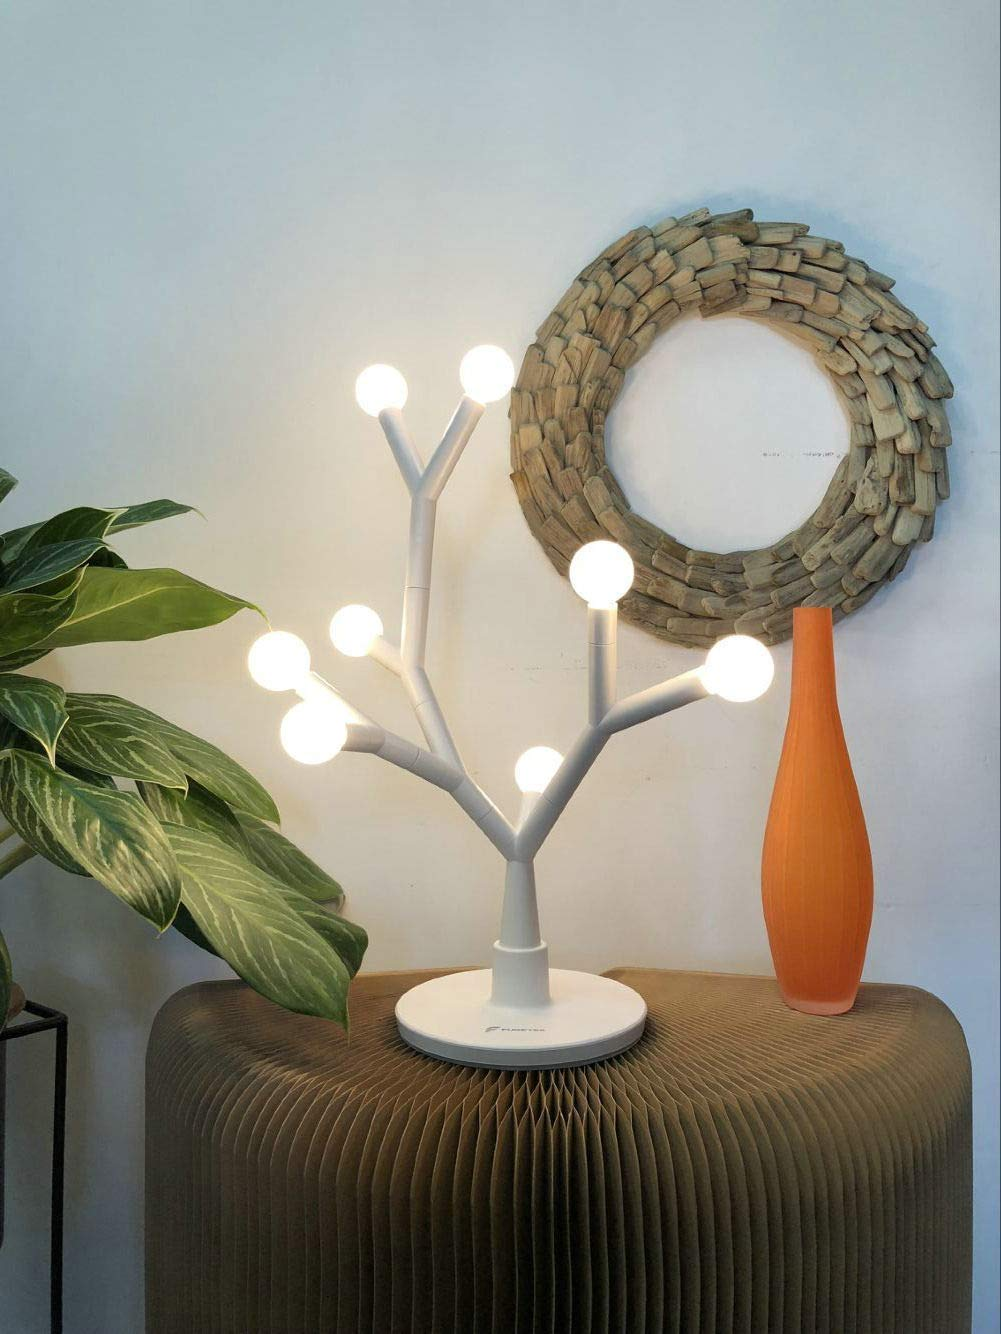 ویکالا · خرید  اصل اورجینال · خرید از آمازون · Tree Branch LED Table Lamp Decorative, Fugetek, 750 Lumen, Modern Unique Design, Interchangeable Branches, 8 Warm White Bulbs, Use Anywhere Home/Office wekala · ویکالا